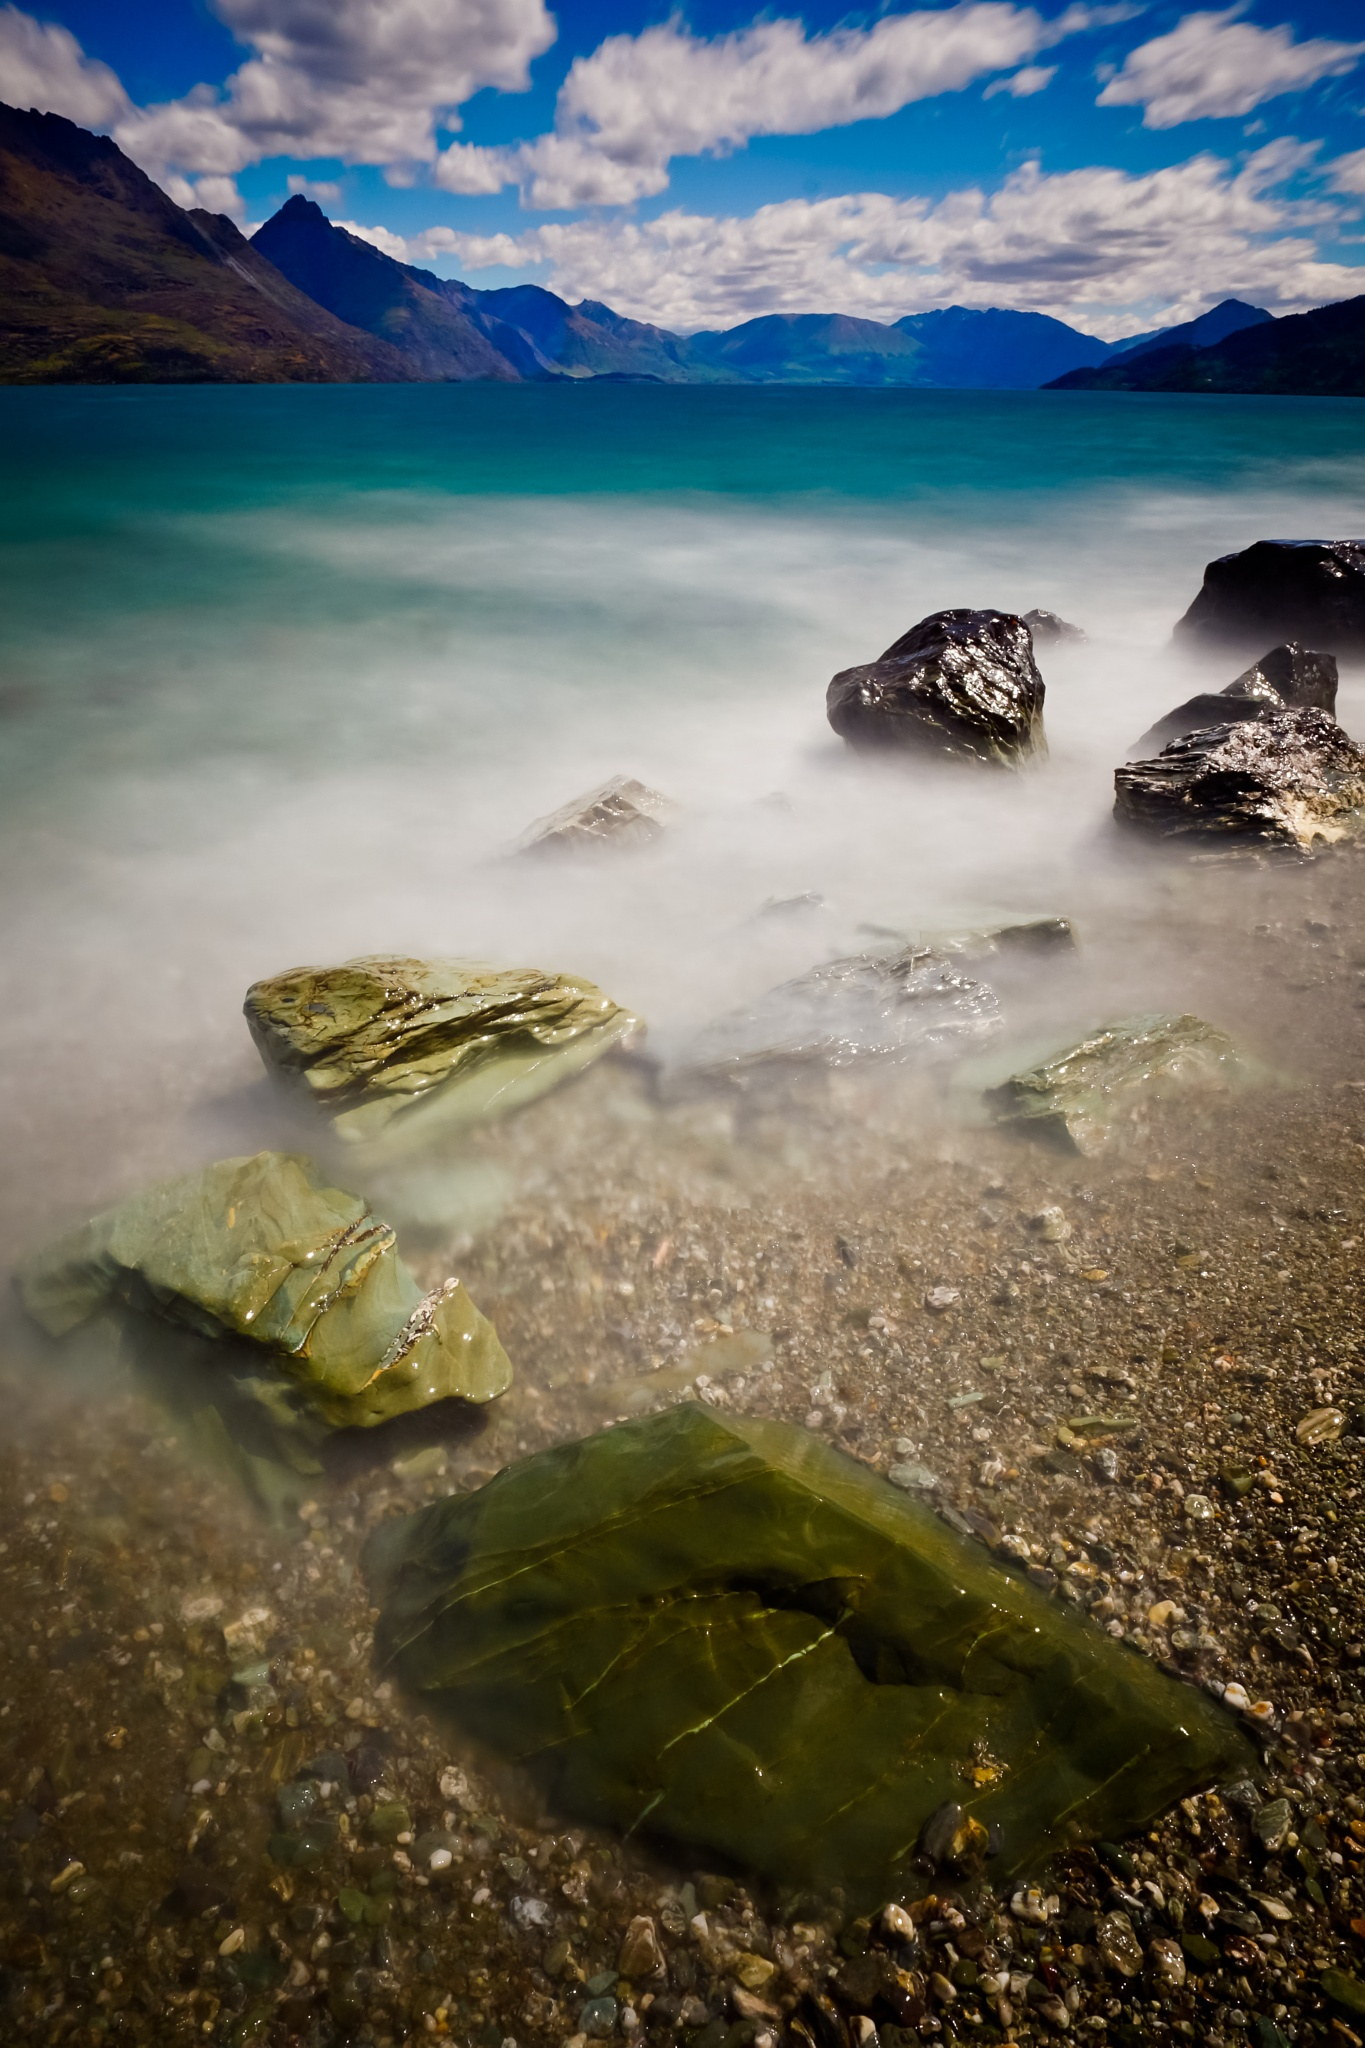 Green stones by Peter Edwardo Vicente.